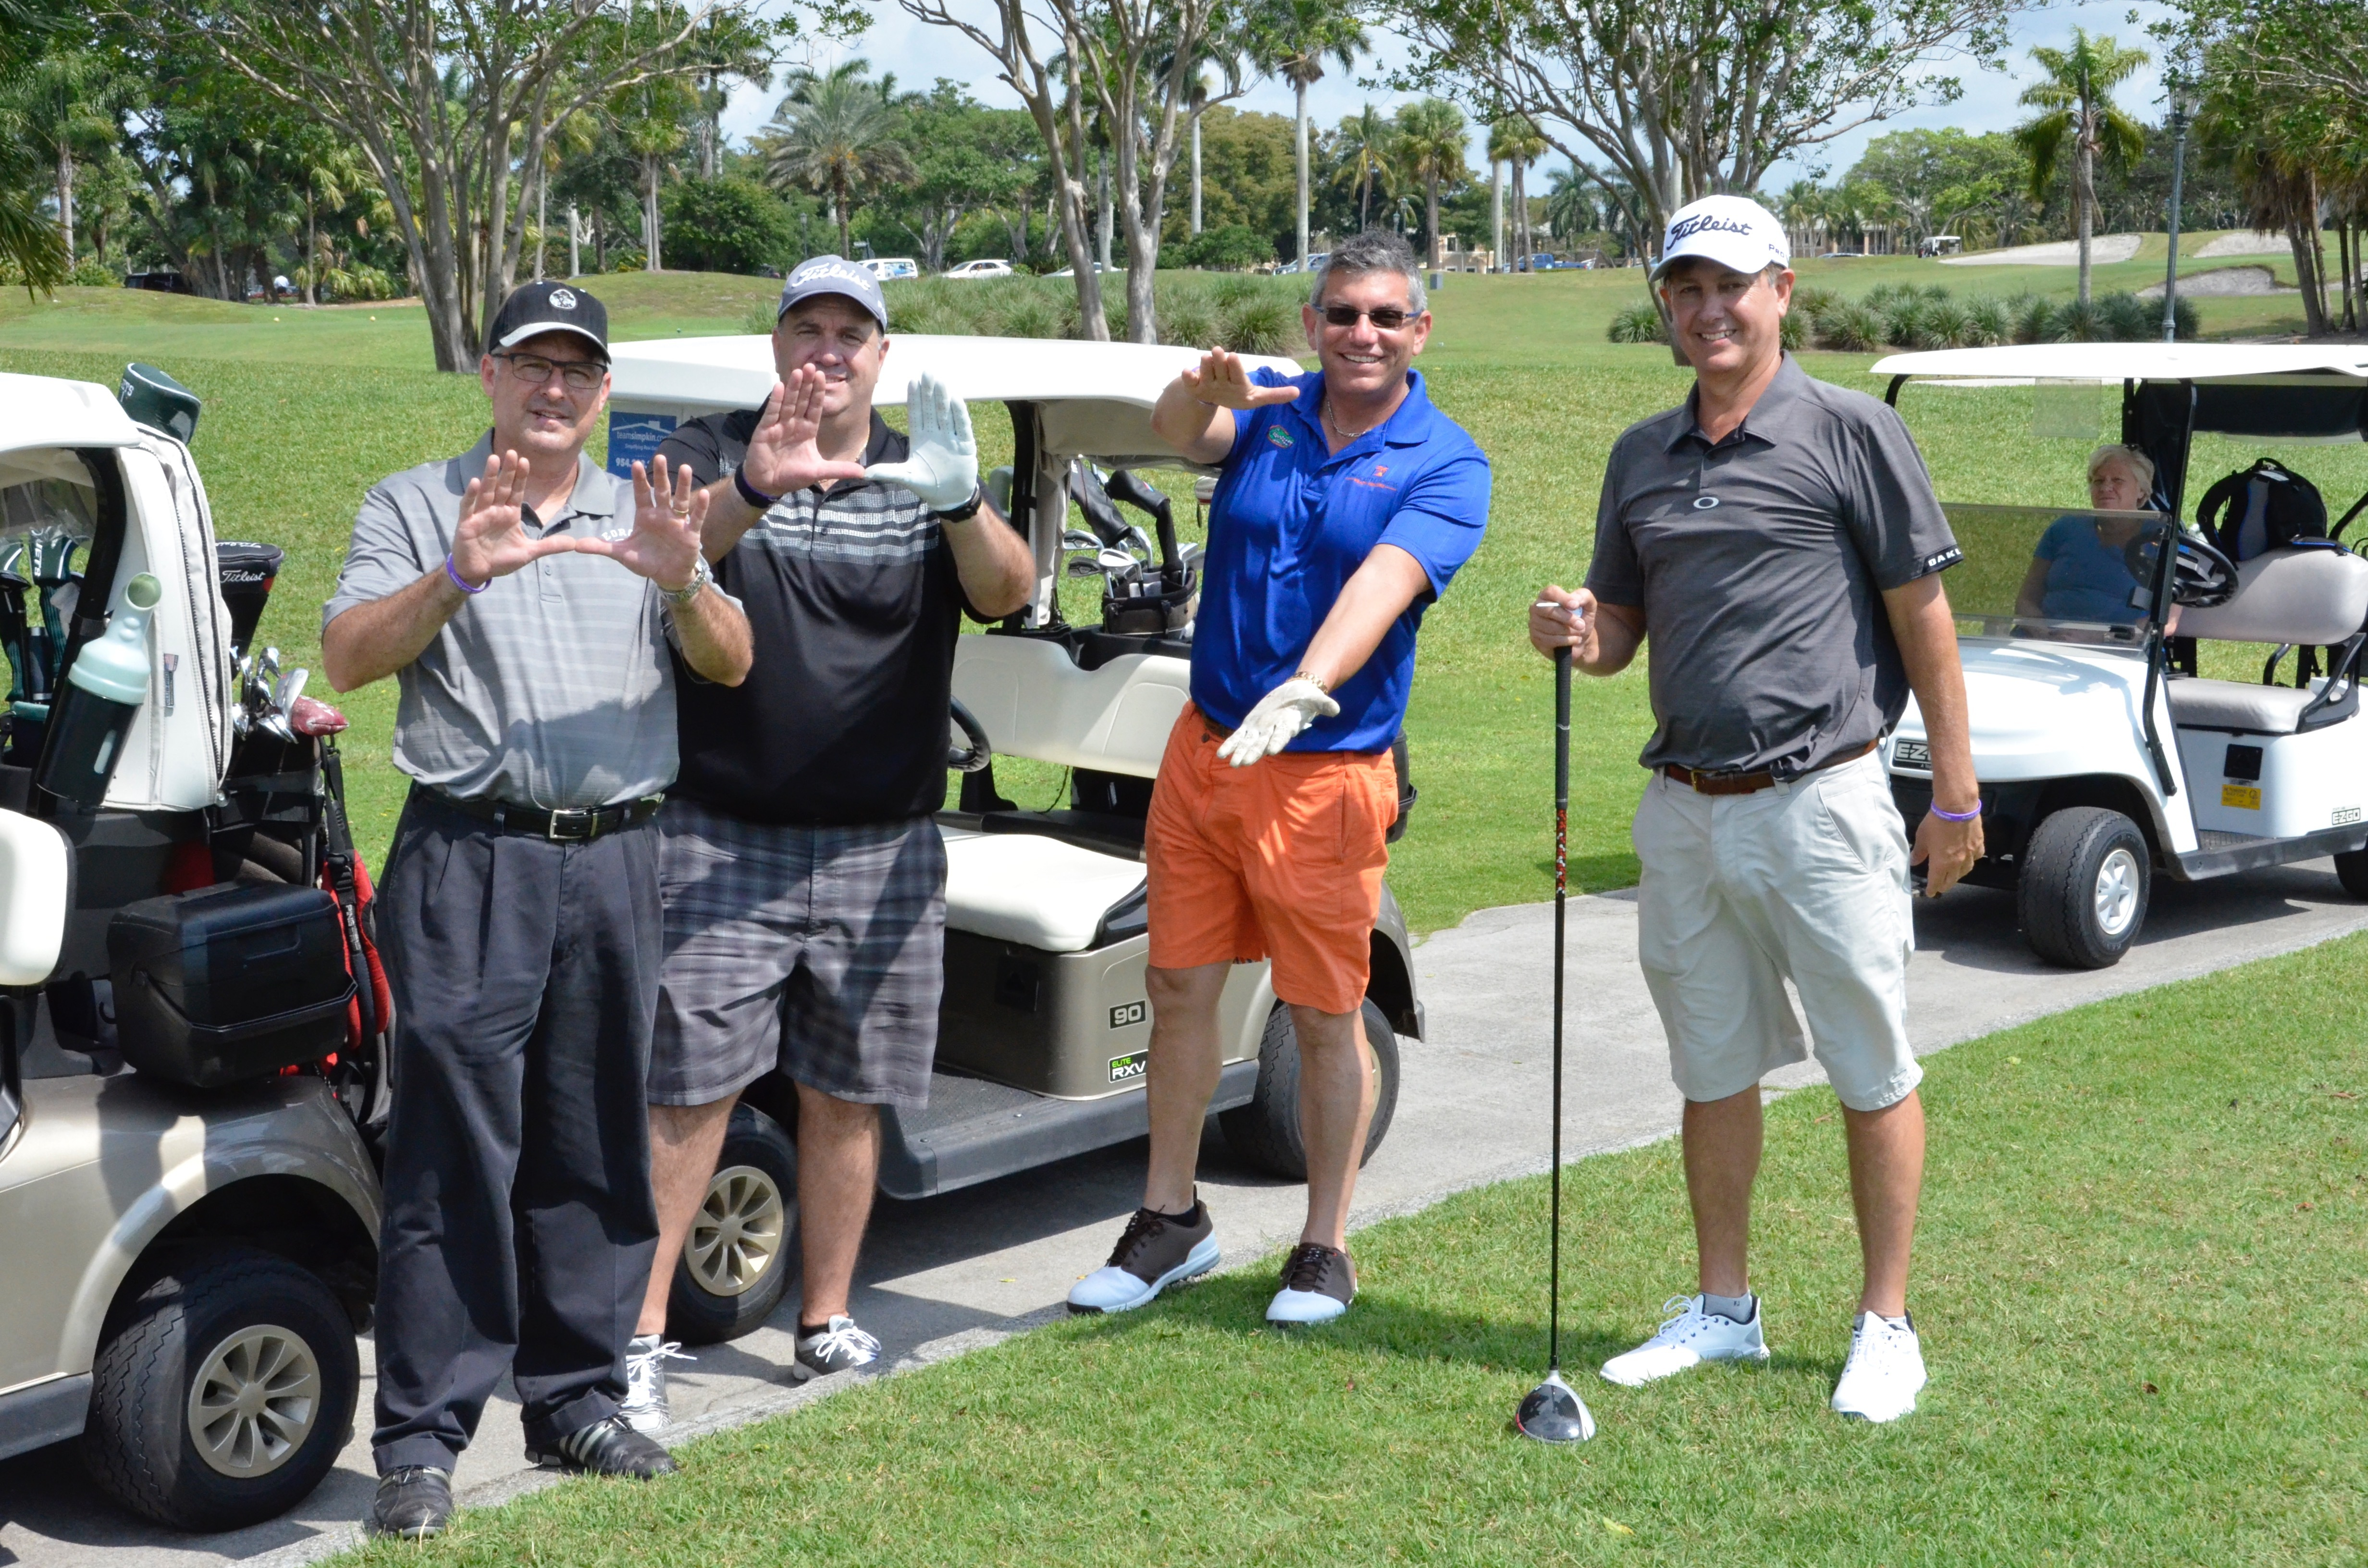 33rd Annual Rotary Golf Classic Sponsored by FHVLEGAL.COM gallery image #49